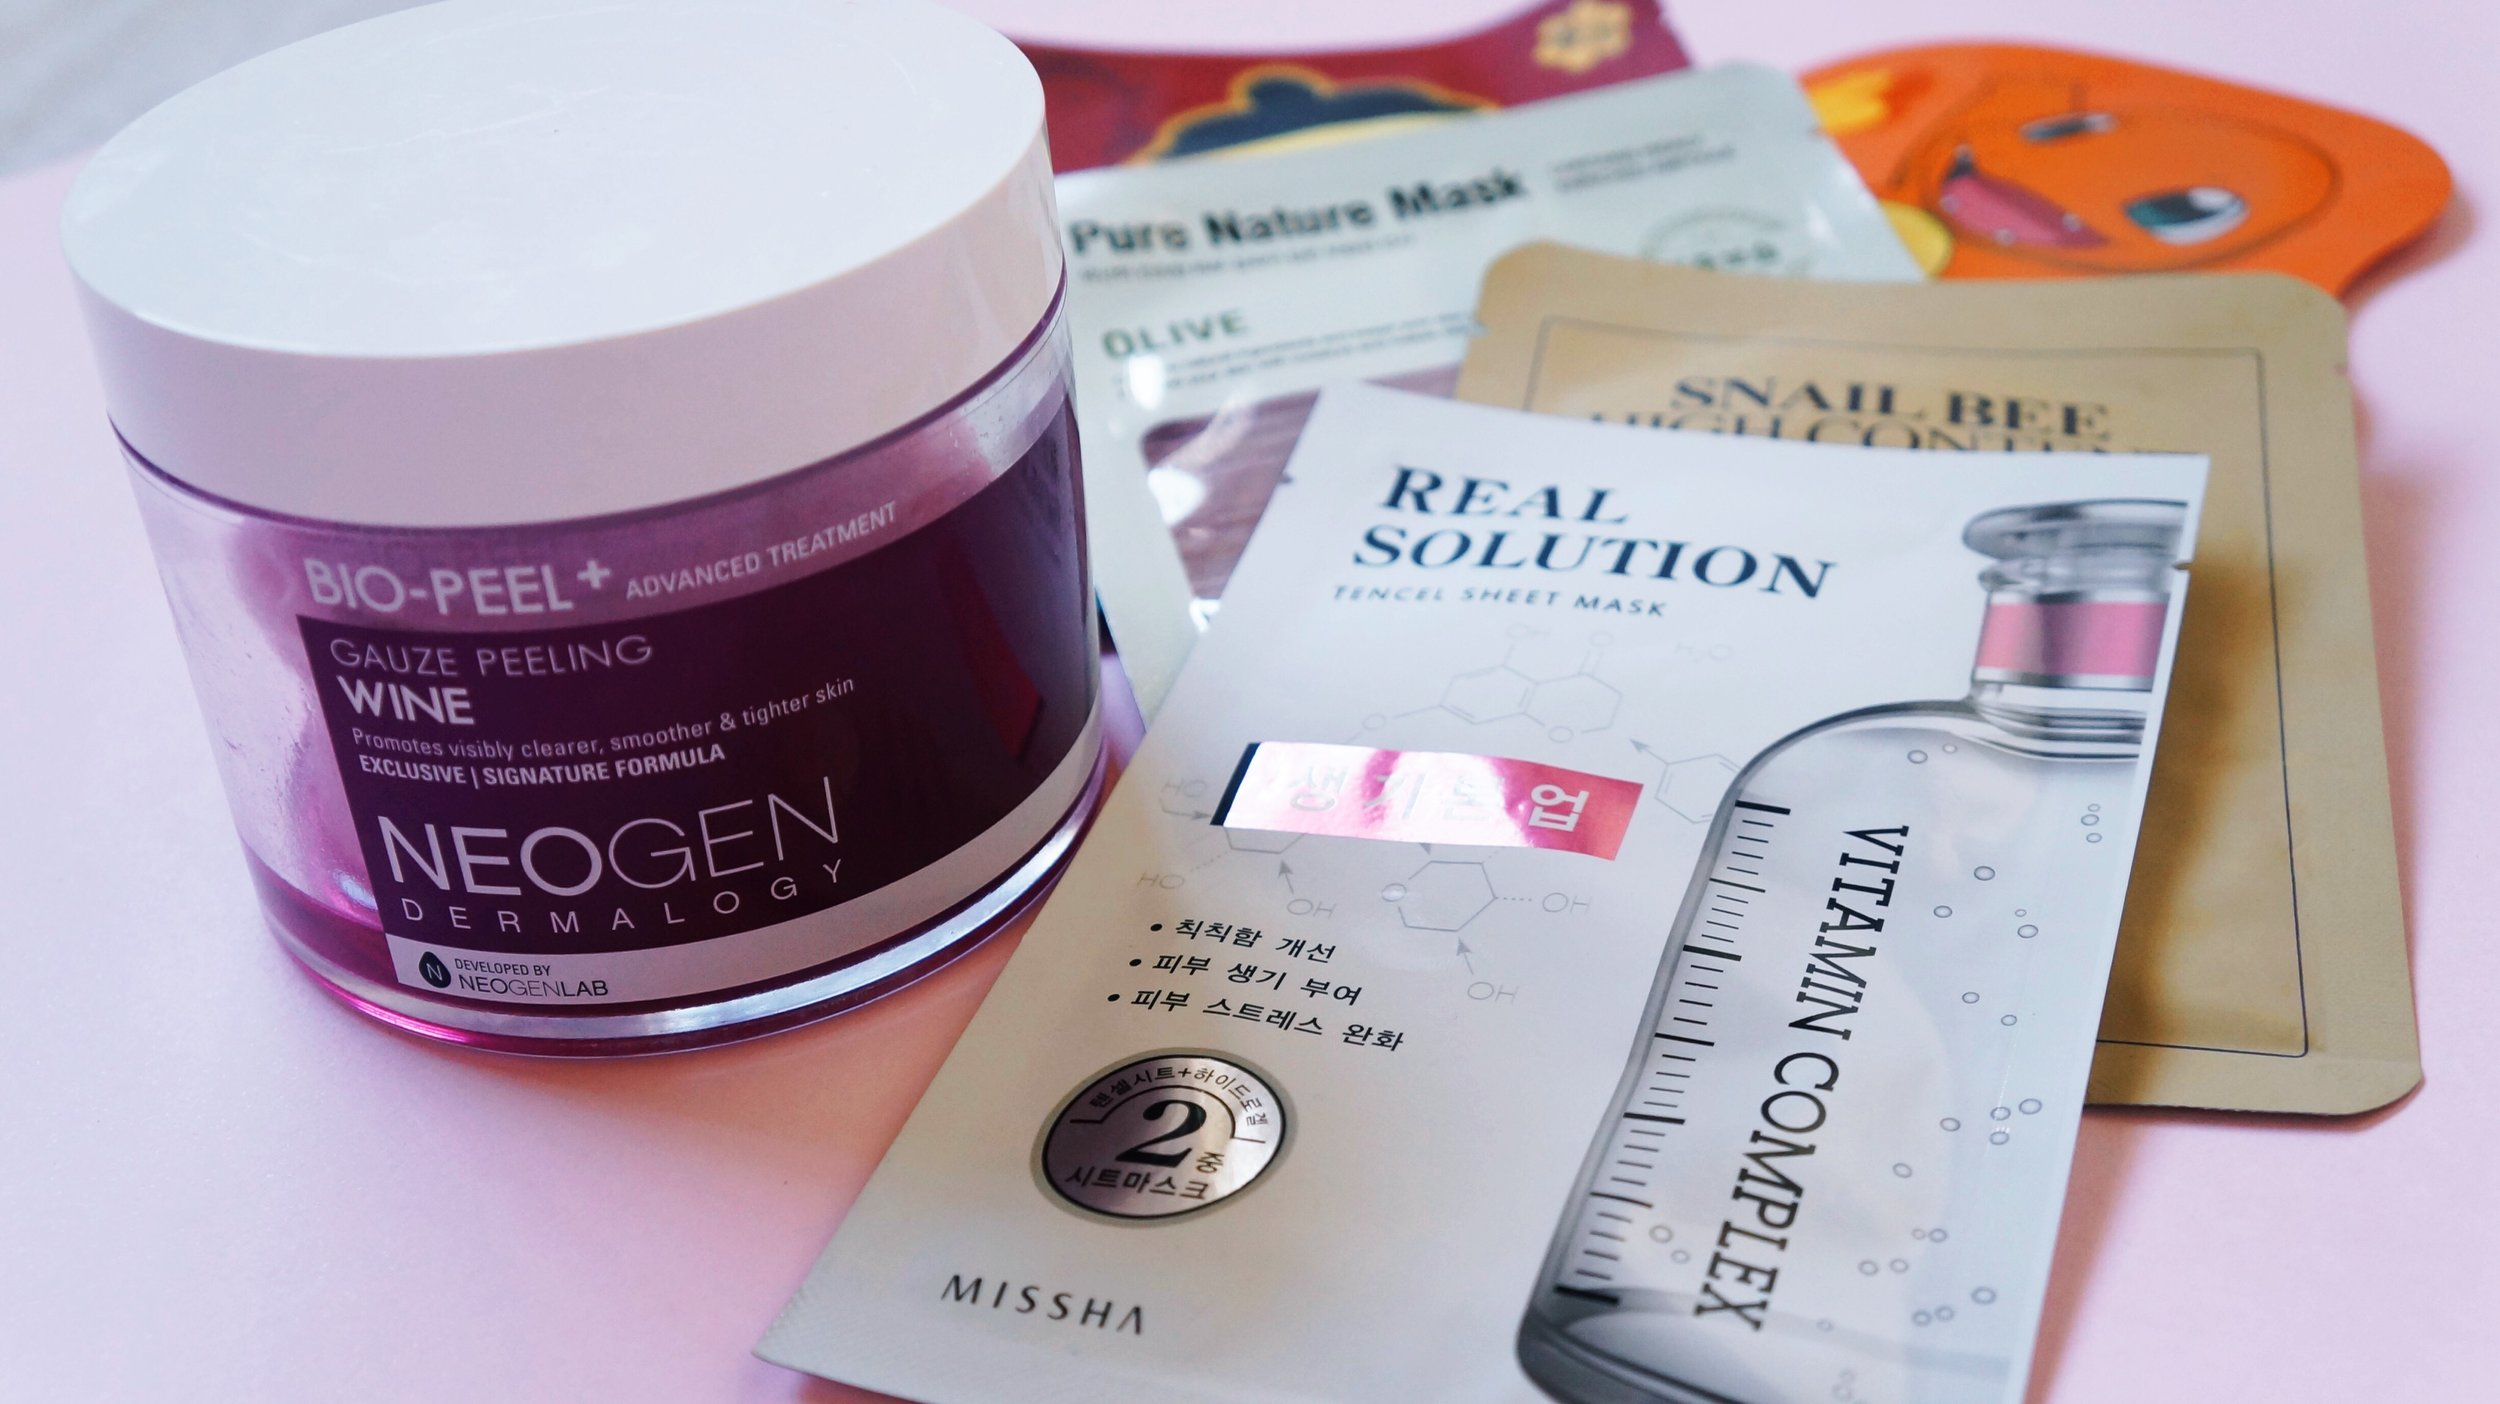 Neogen: Bio Peel+ Guaze Peeling Wine ; Missha: Real Solution Tencel Sheet Mask Vitamin Complex ; outras máscaras.